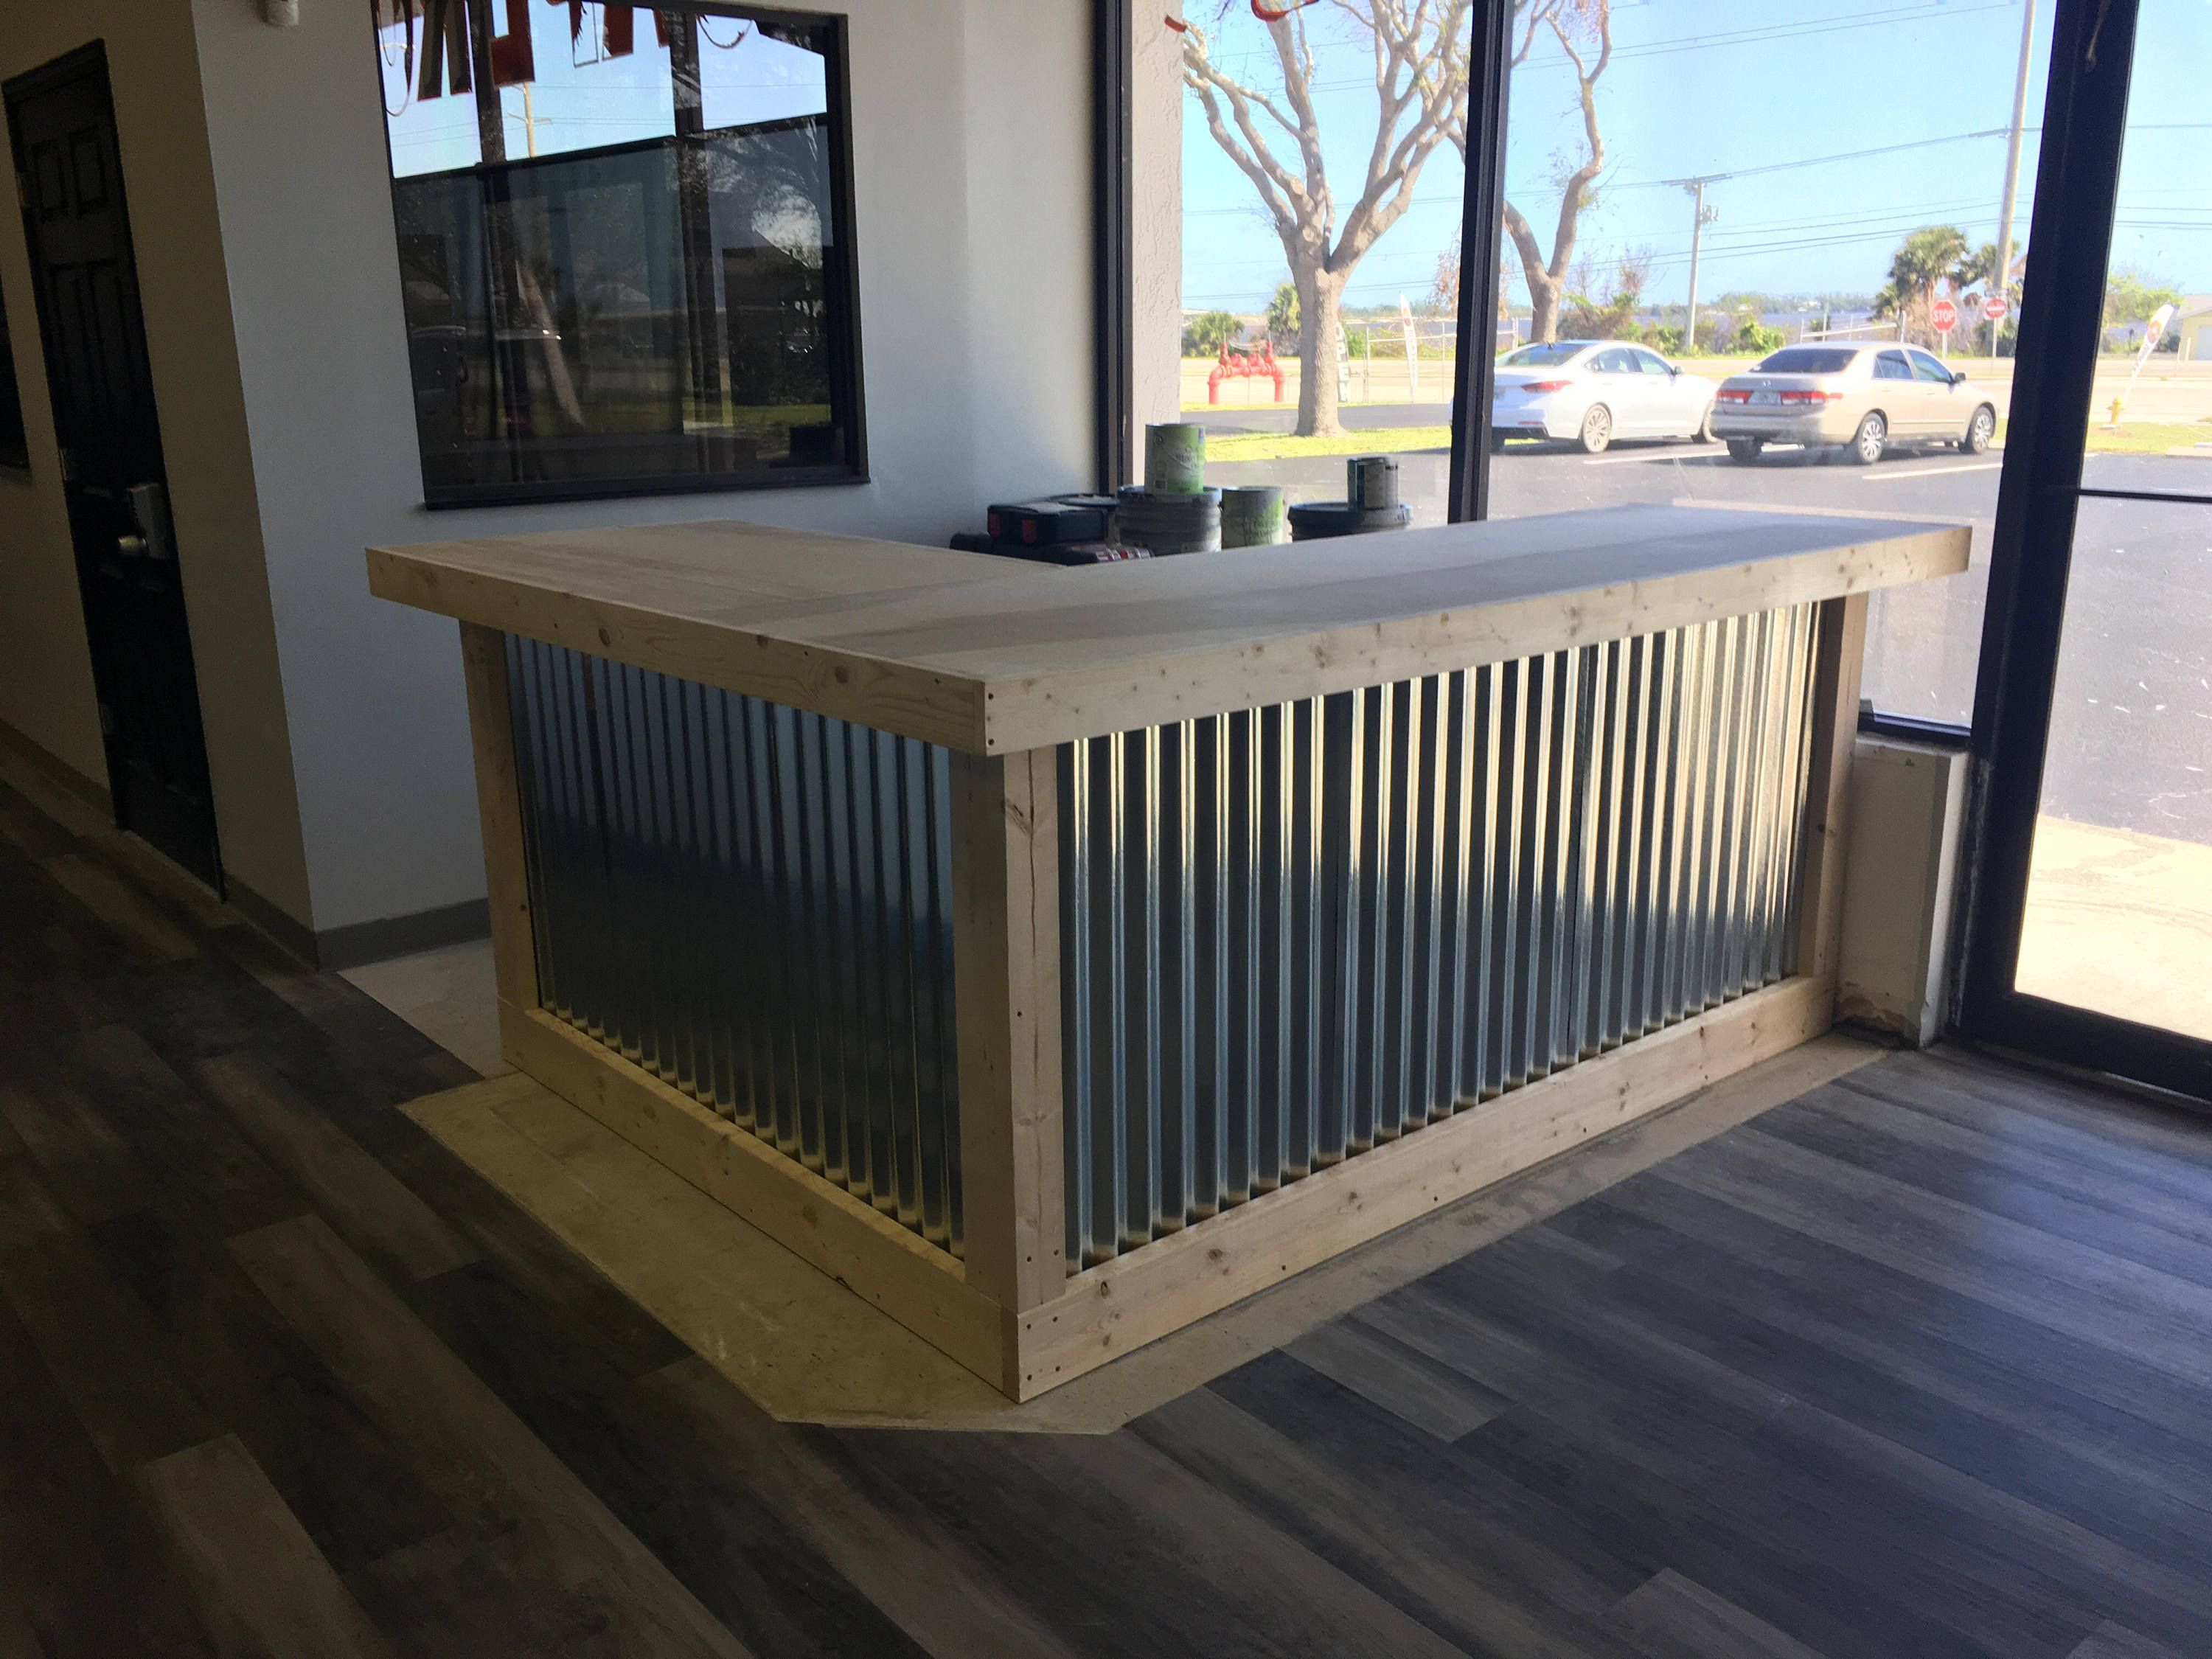 The L Shaped Counter 8 X 6 Foot Corrugated Metal Bar Sales Counter Reception Desk Unfinished By Buyfoo Corrugated Metal Indoor Bar Metal Reception Desks